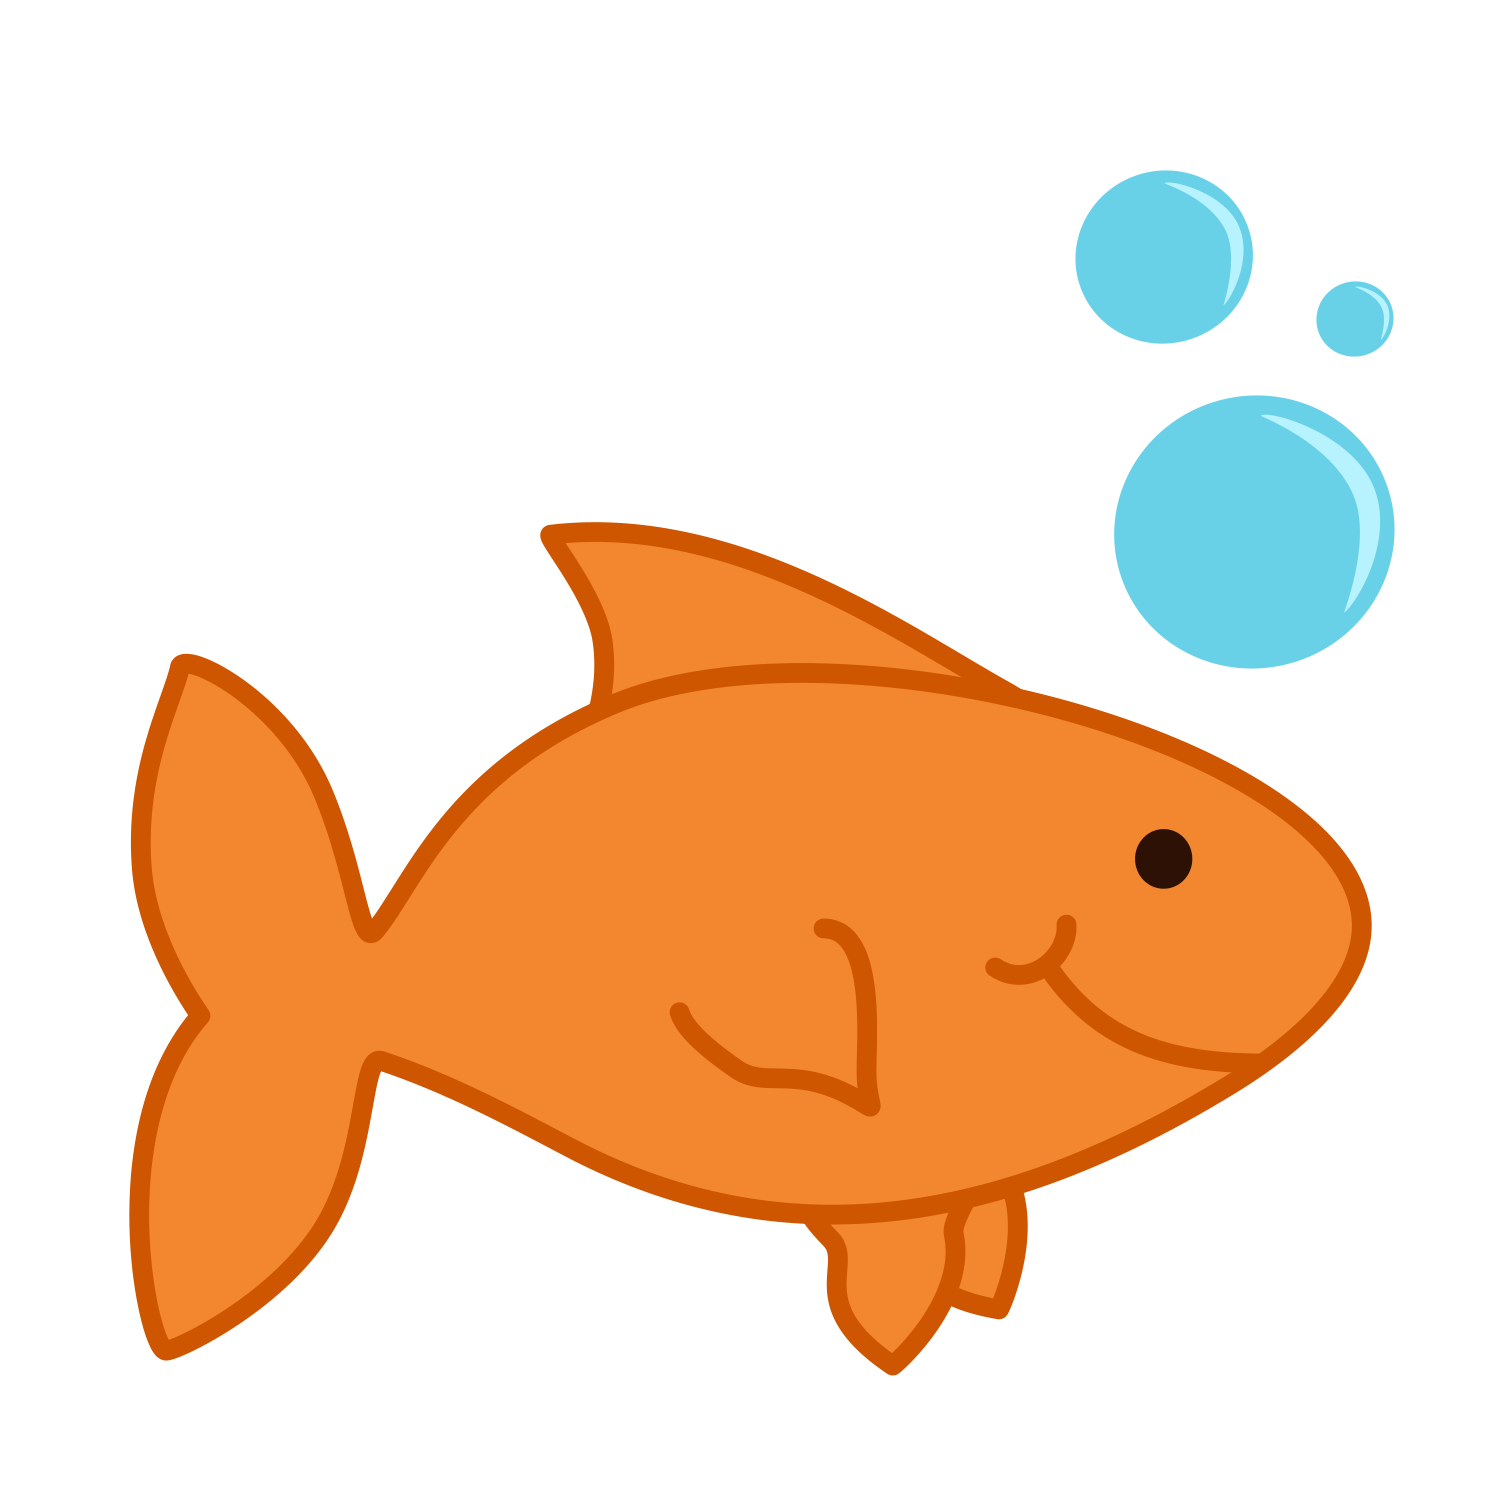 Heart clipart water. Free goldfish cliparts download